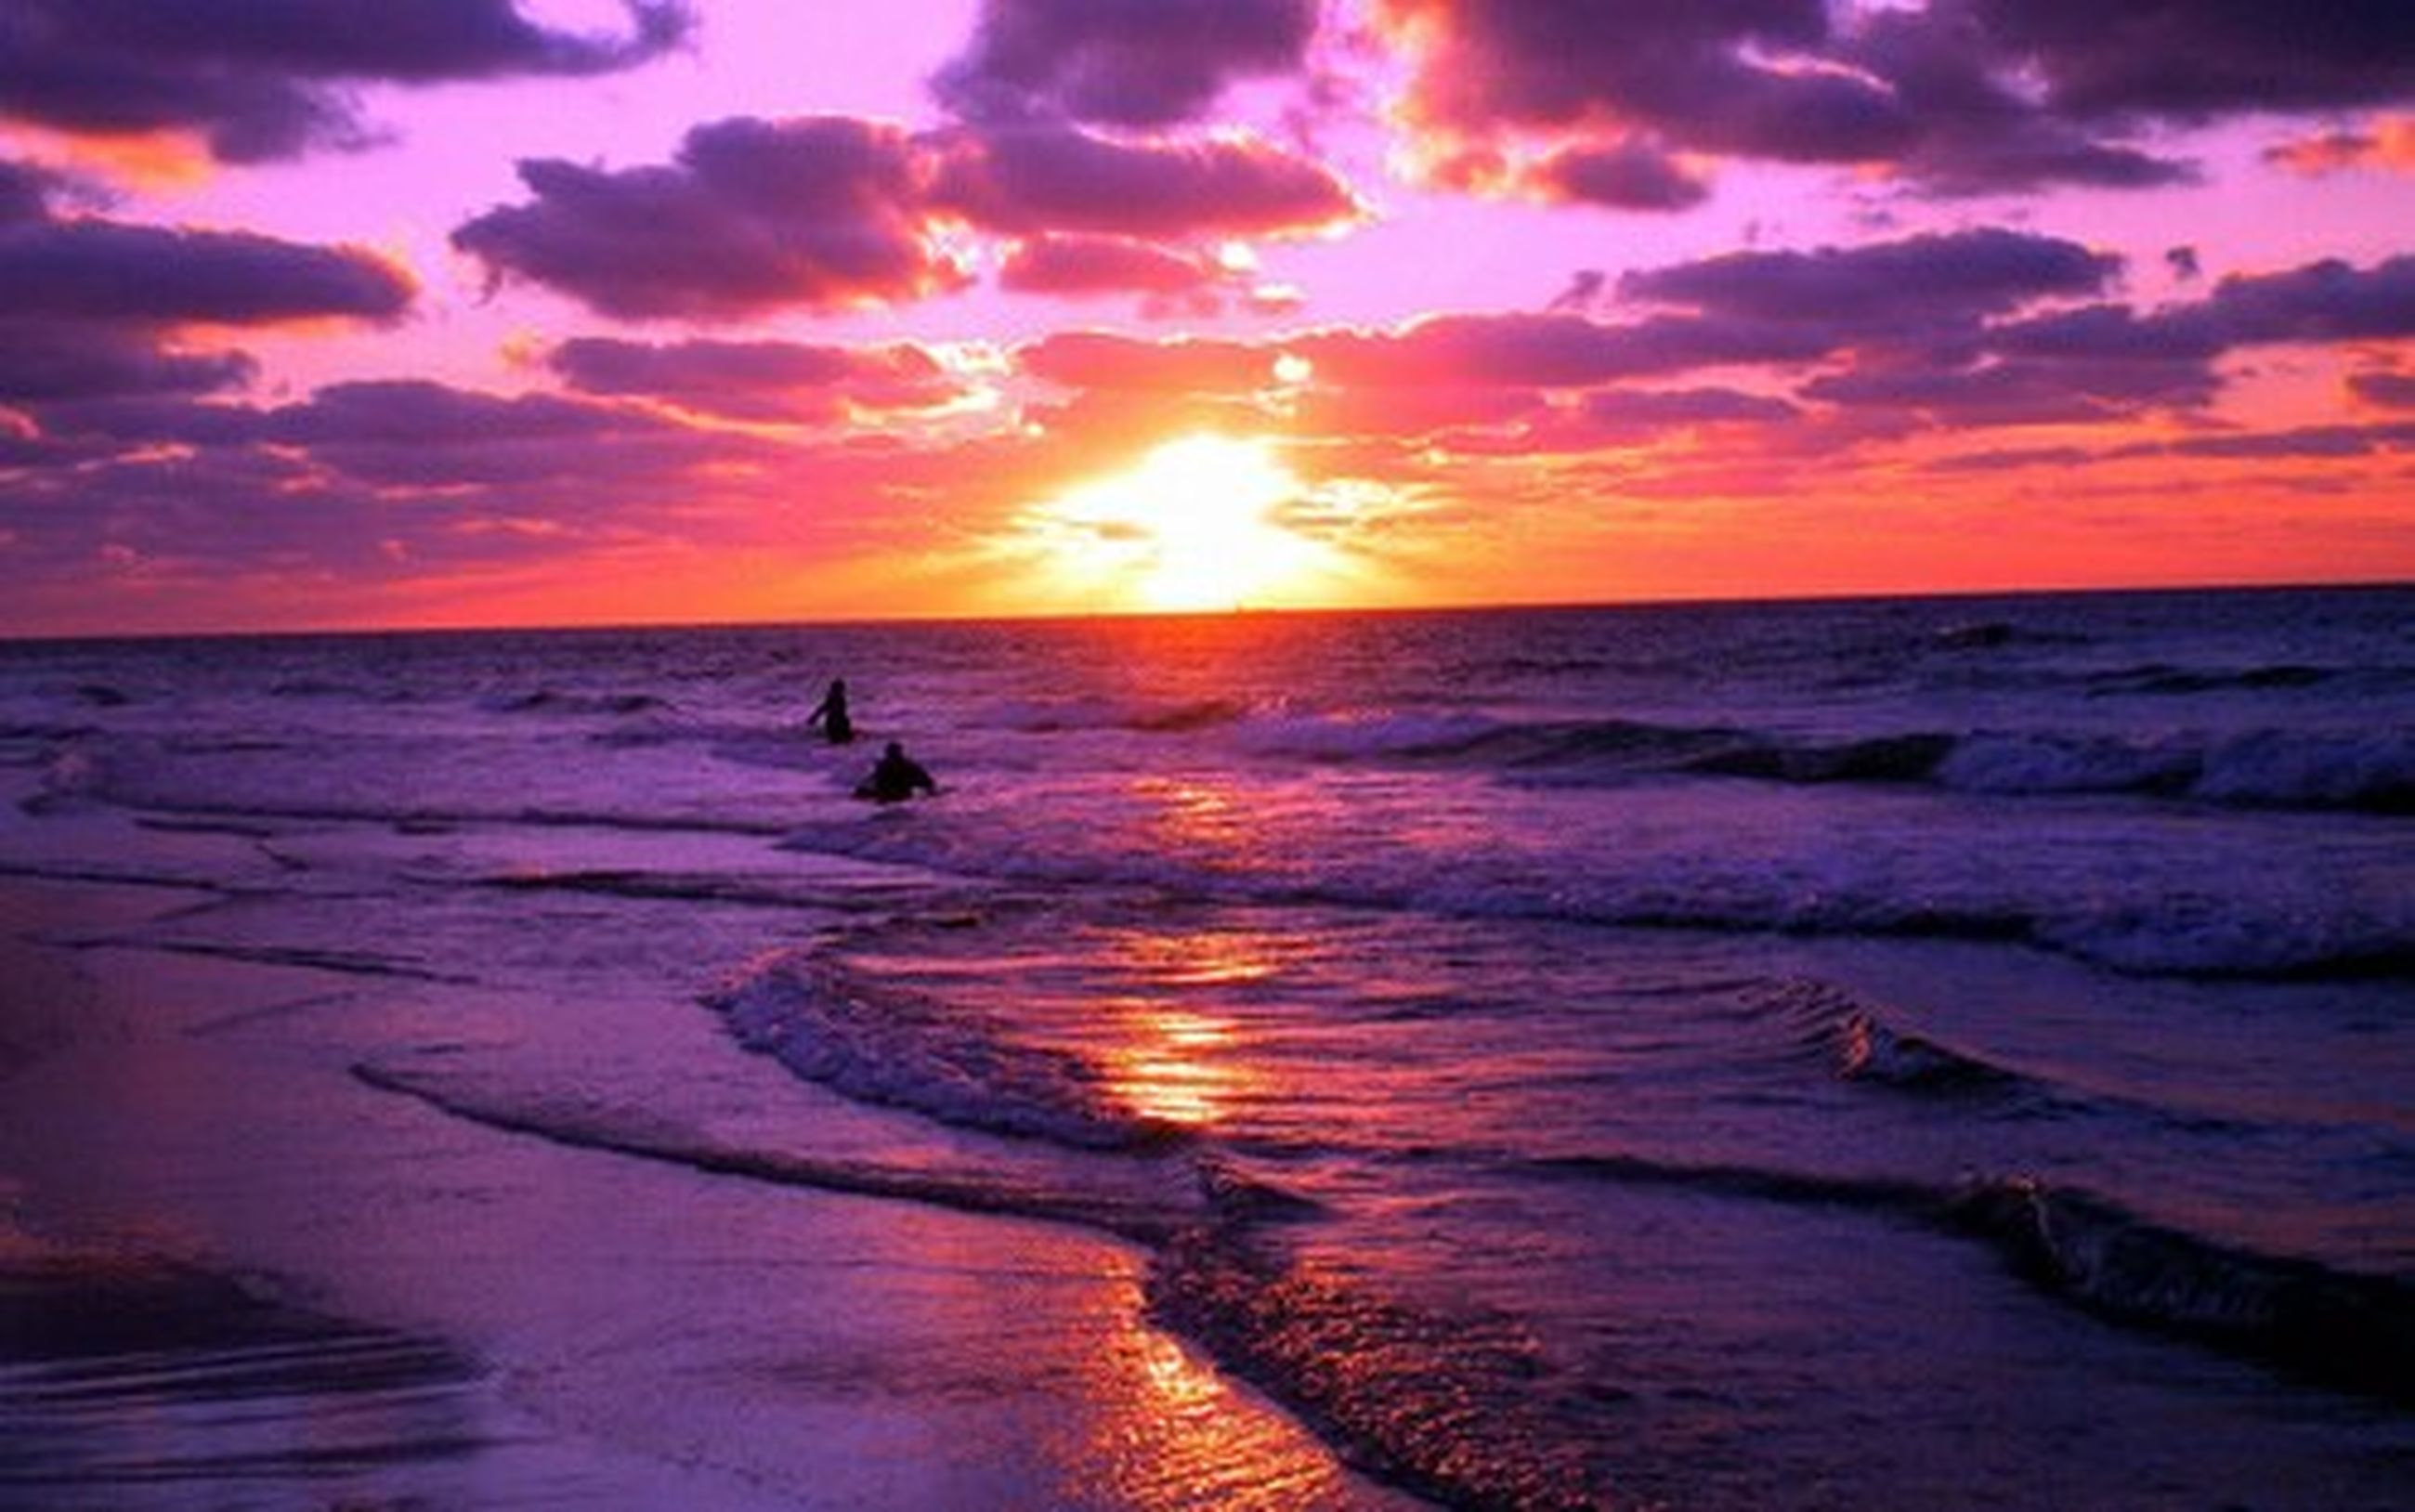 sunset, sea, water, horizon over water, scenics, sky, orange color, beauty in nature, tranquil scene, beach, tranquility, sun, idyllic, nature, reflection, cloud - sky, shore, wave, dramatic sky, cloud